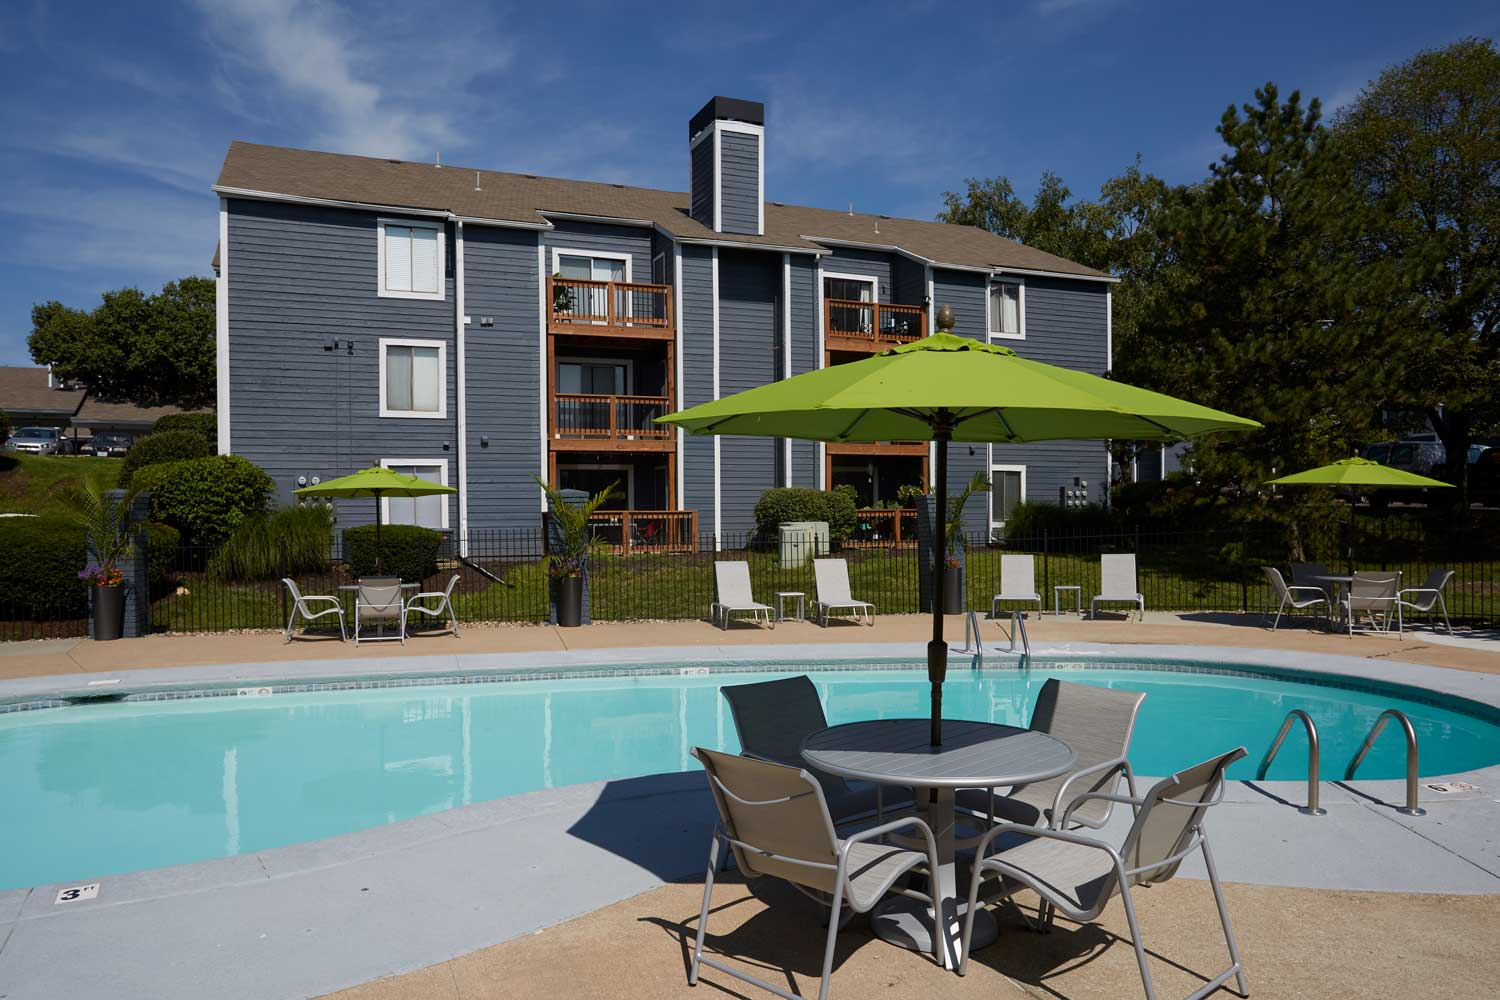 Pool Deck at Perry 81 Apartments in Overland Park, Kansas